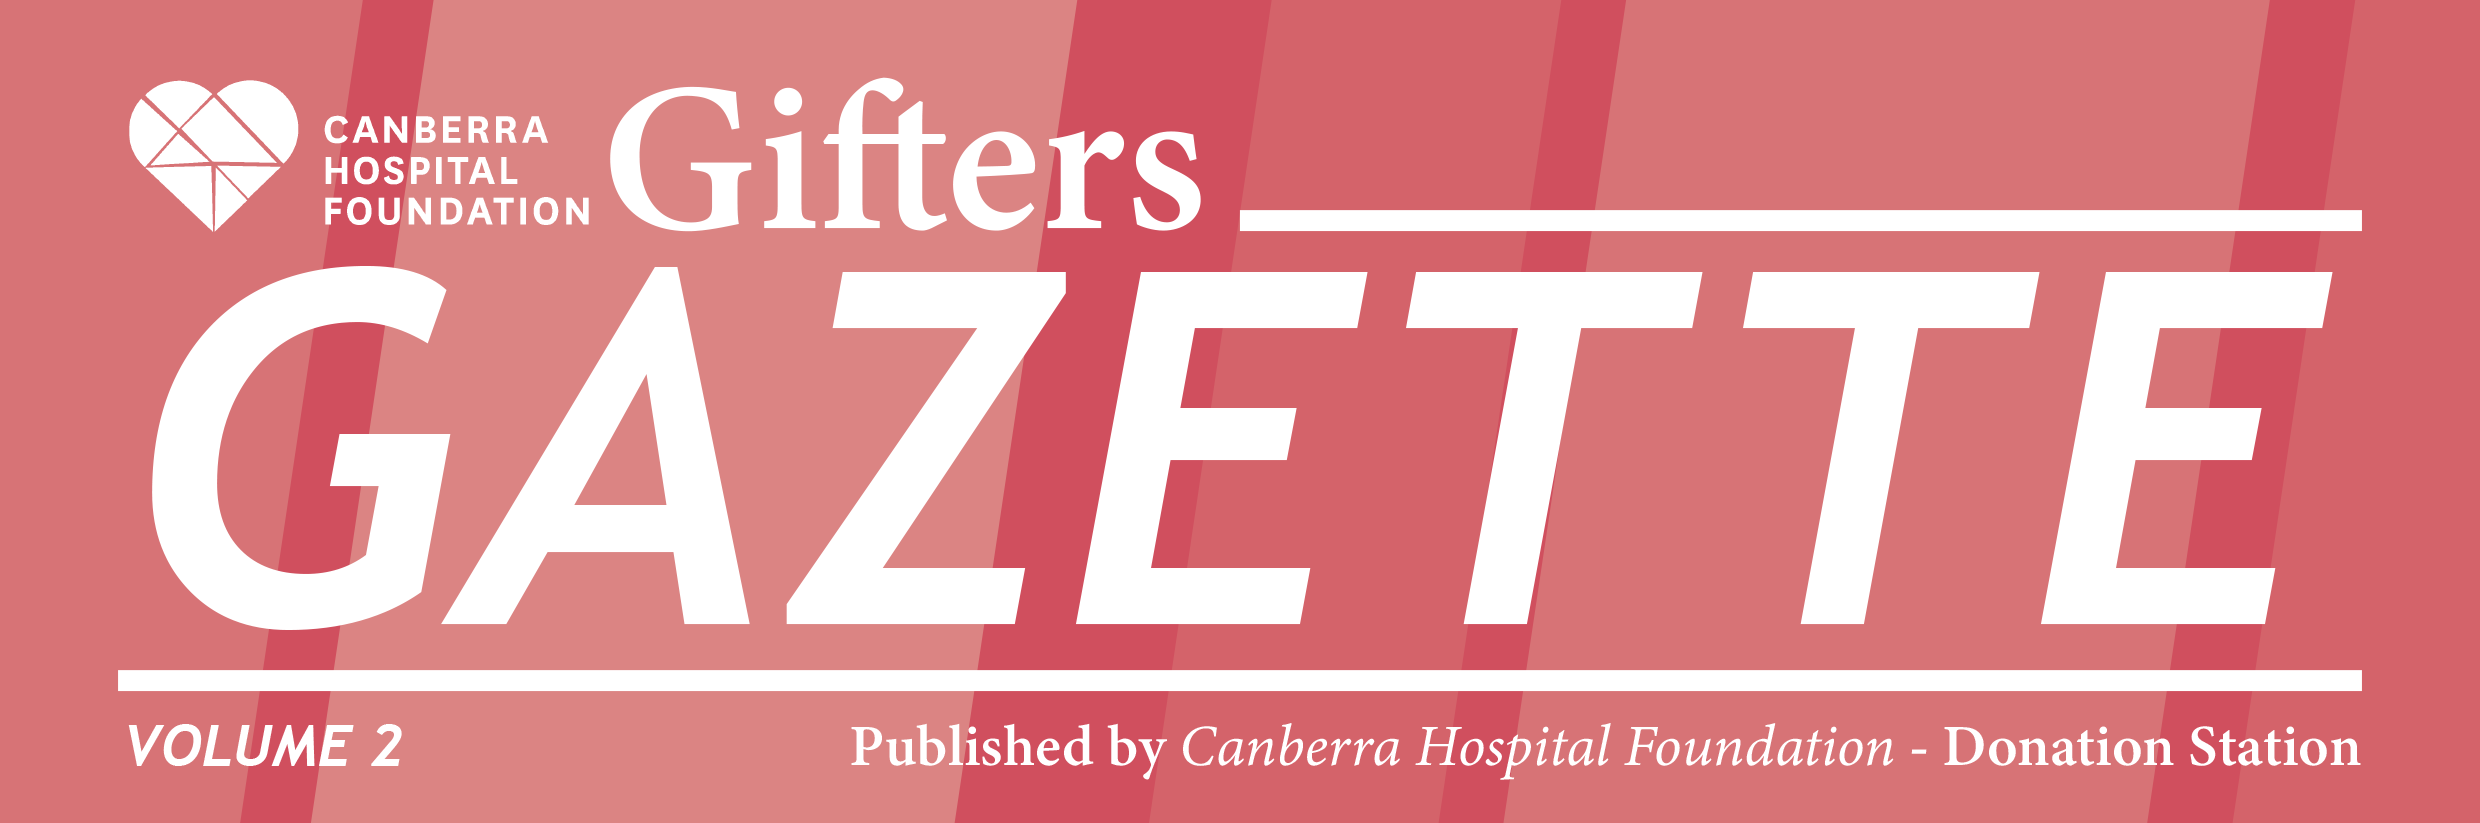 Gifter's Gazette Volume 2